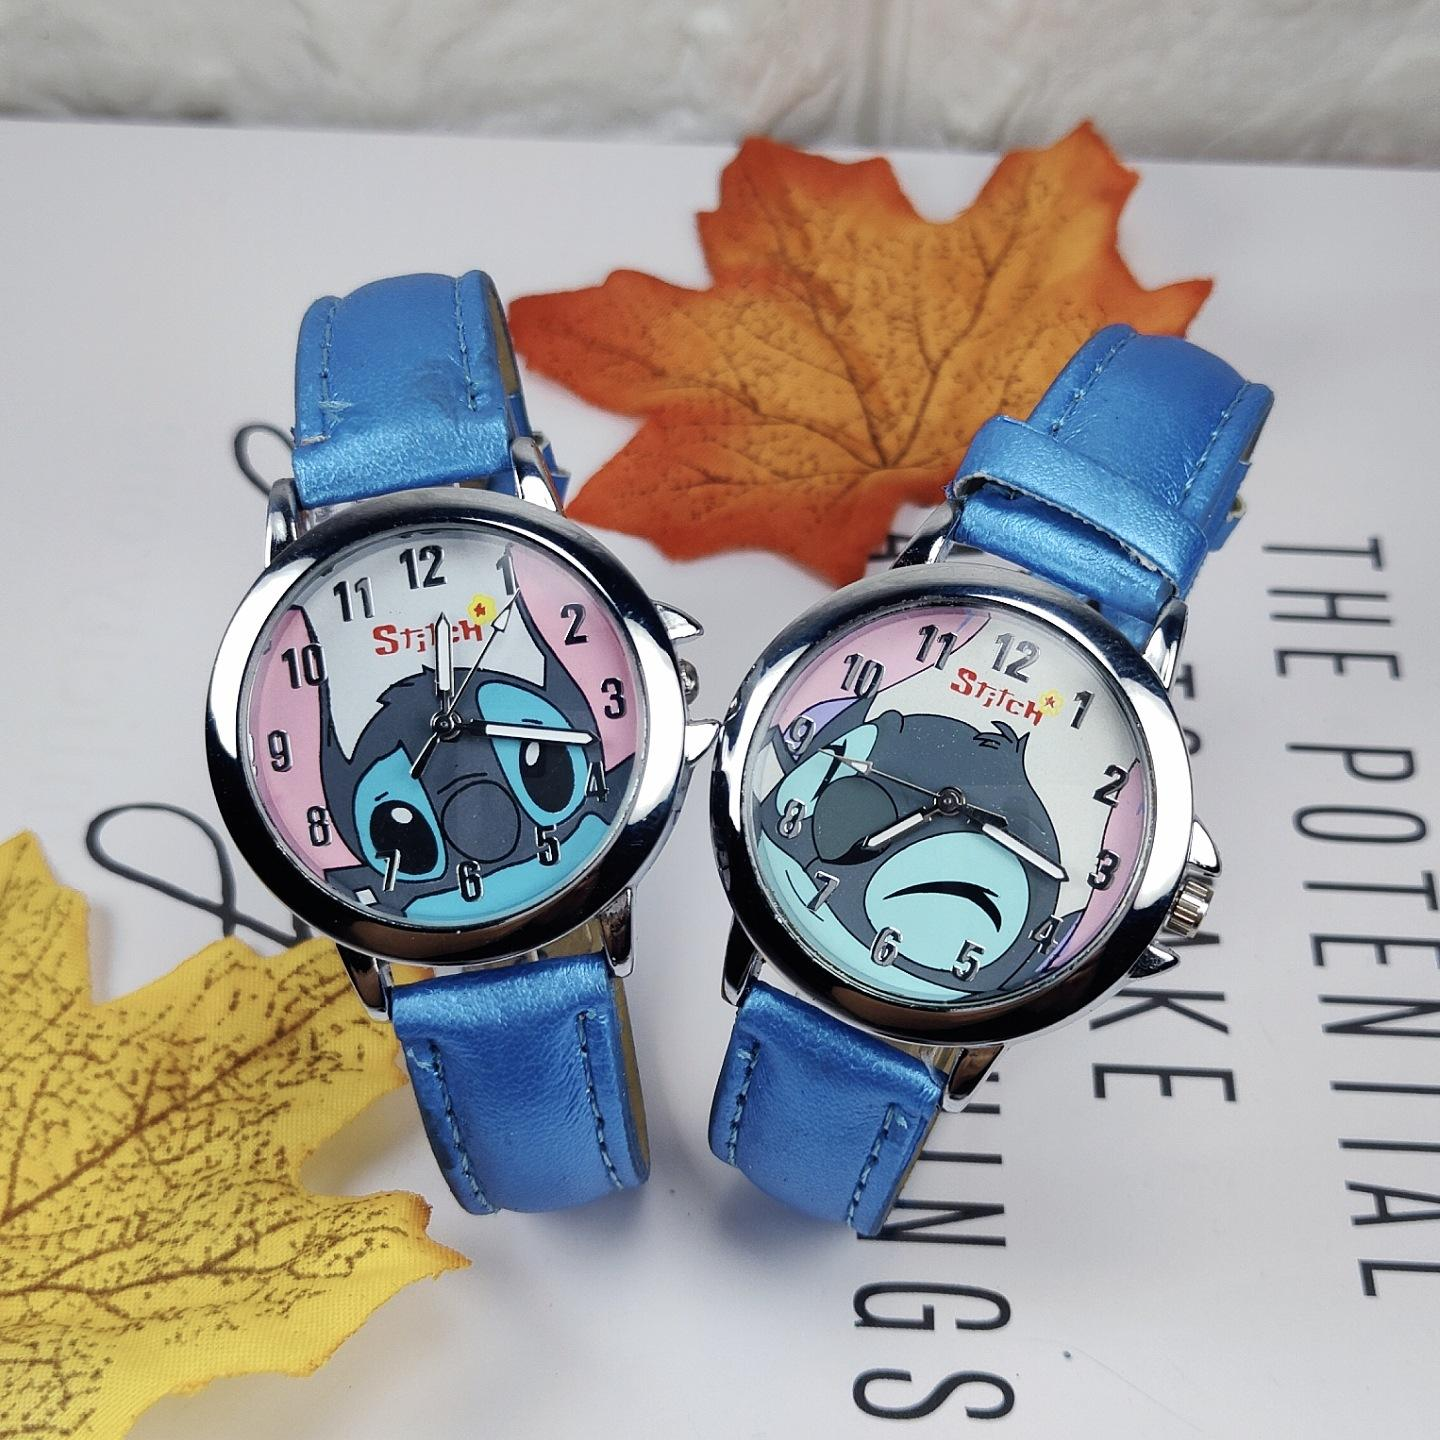 Fashion boys girls watch cute cartoon kids watches leather strap quartz watch for children lovely gift kids clock